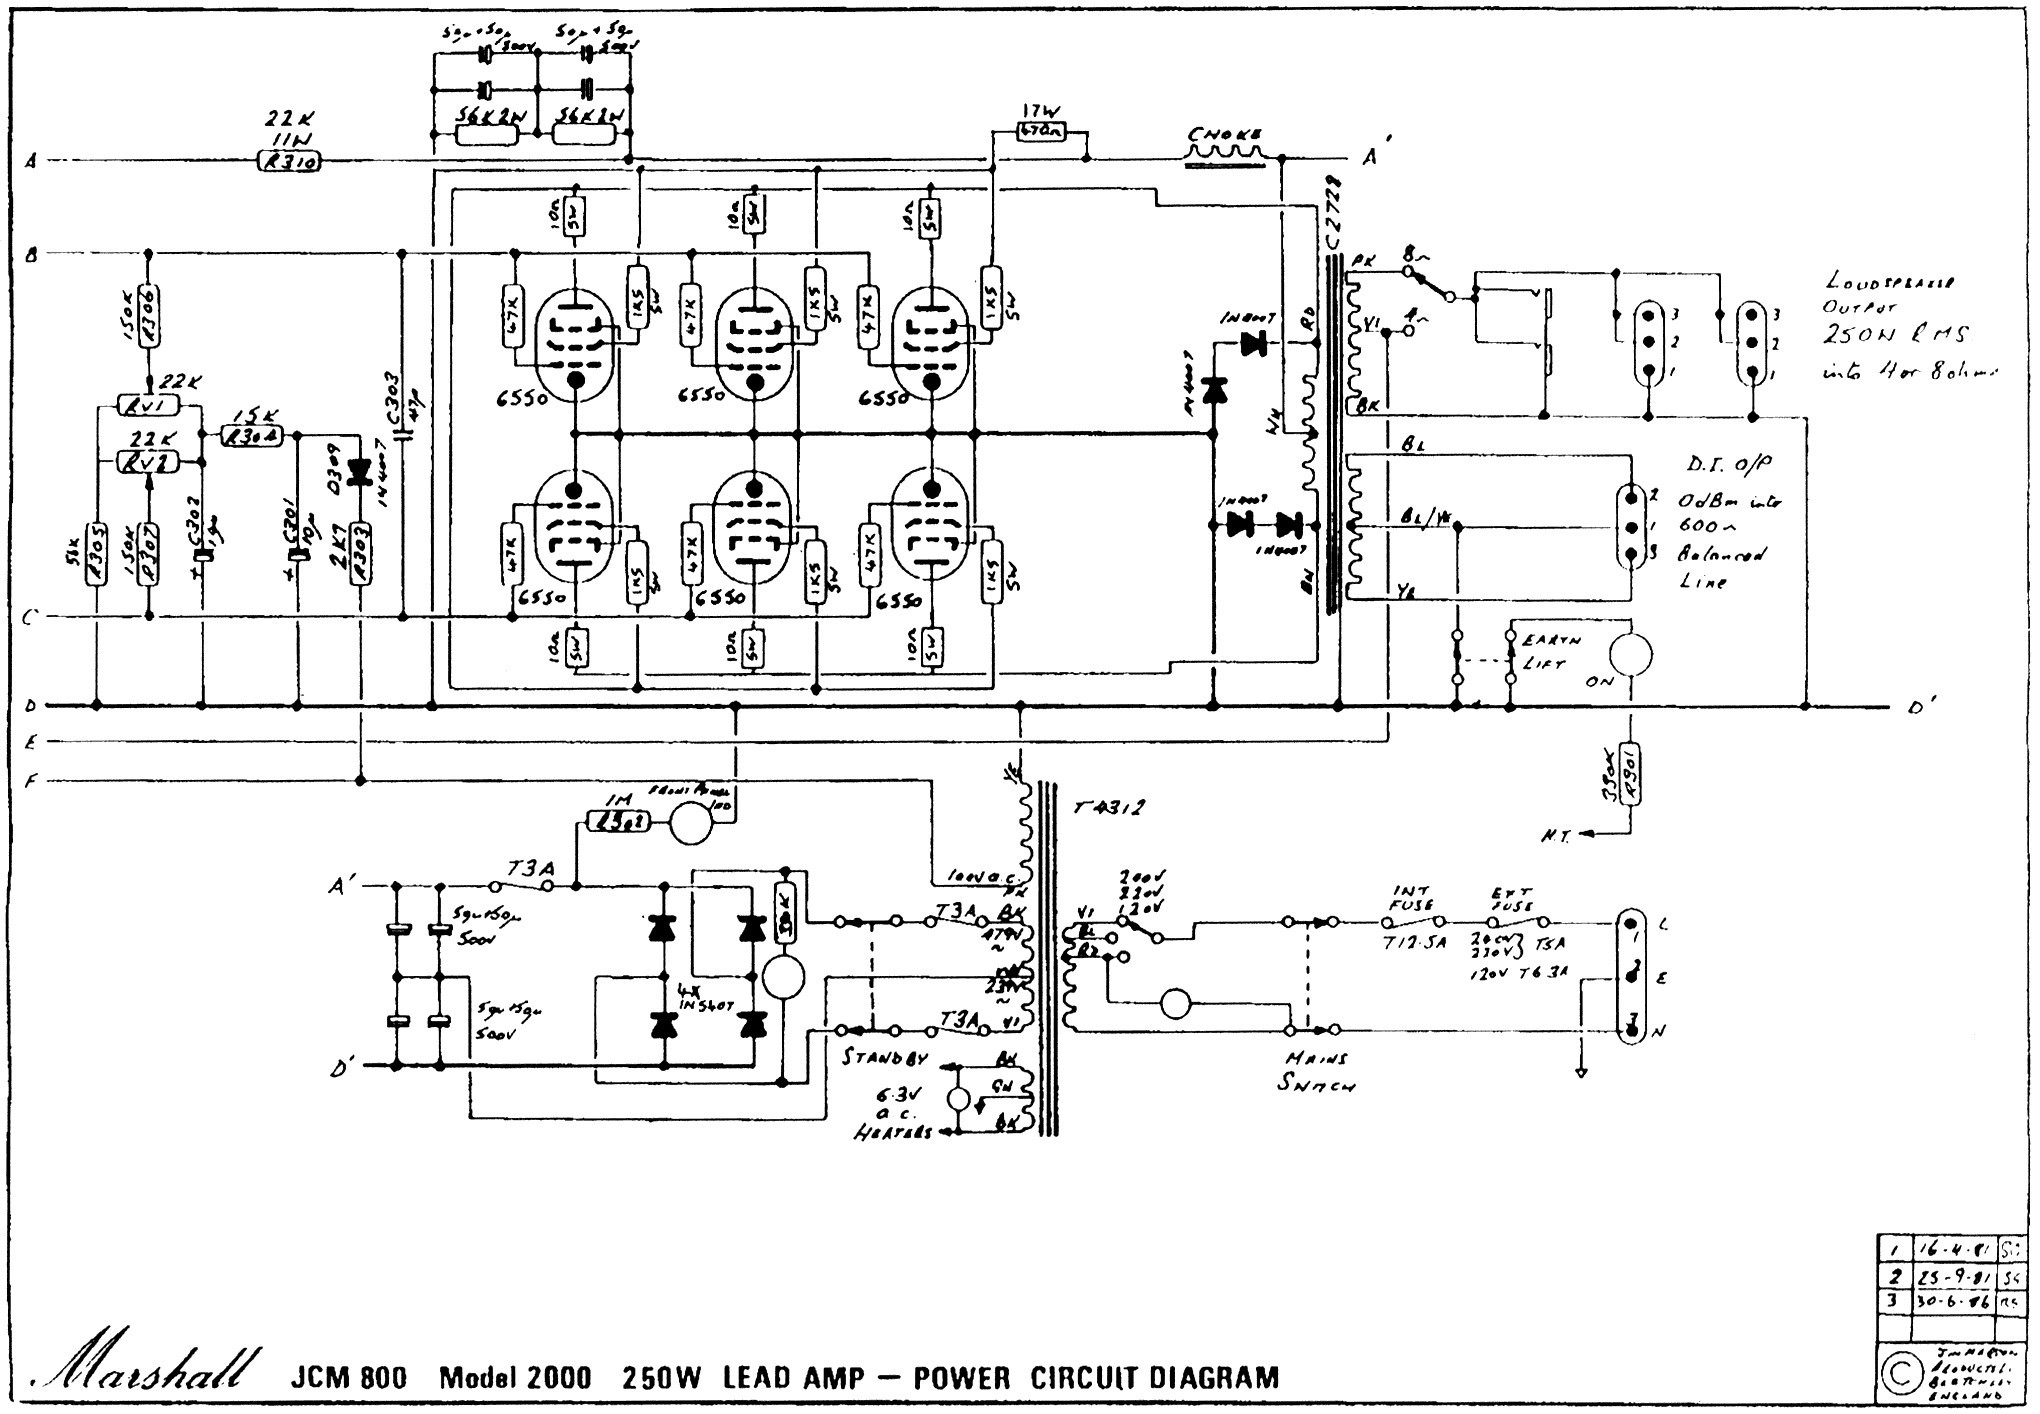 2 Button Footswitch Schematic